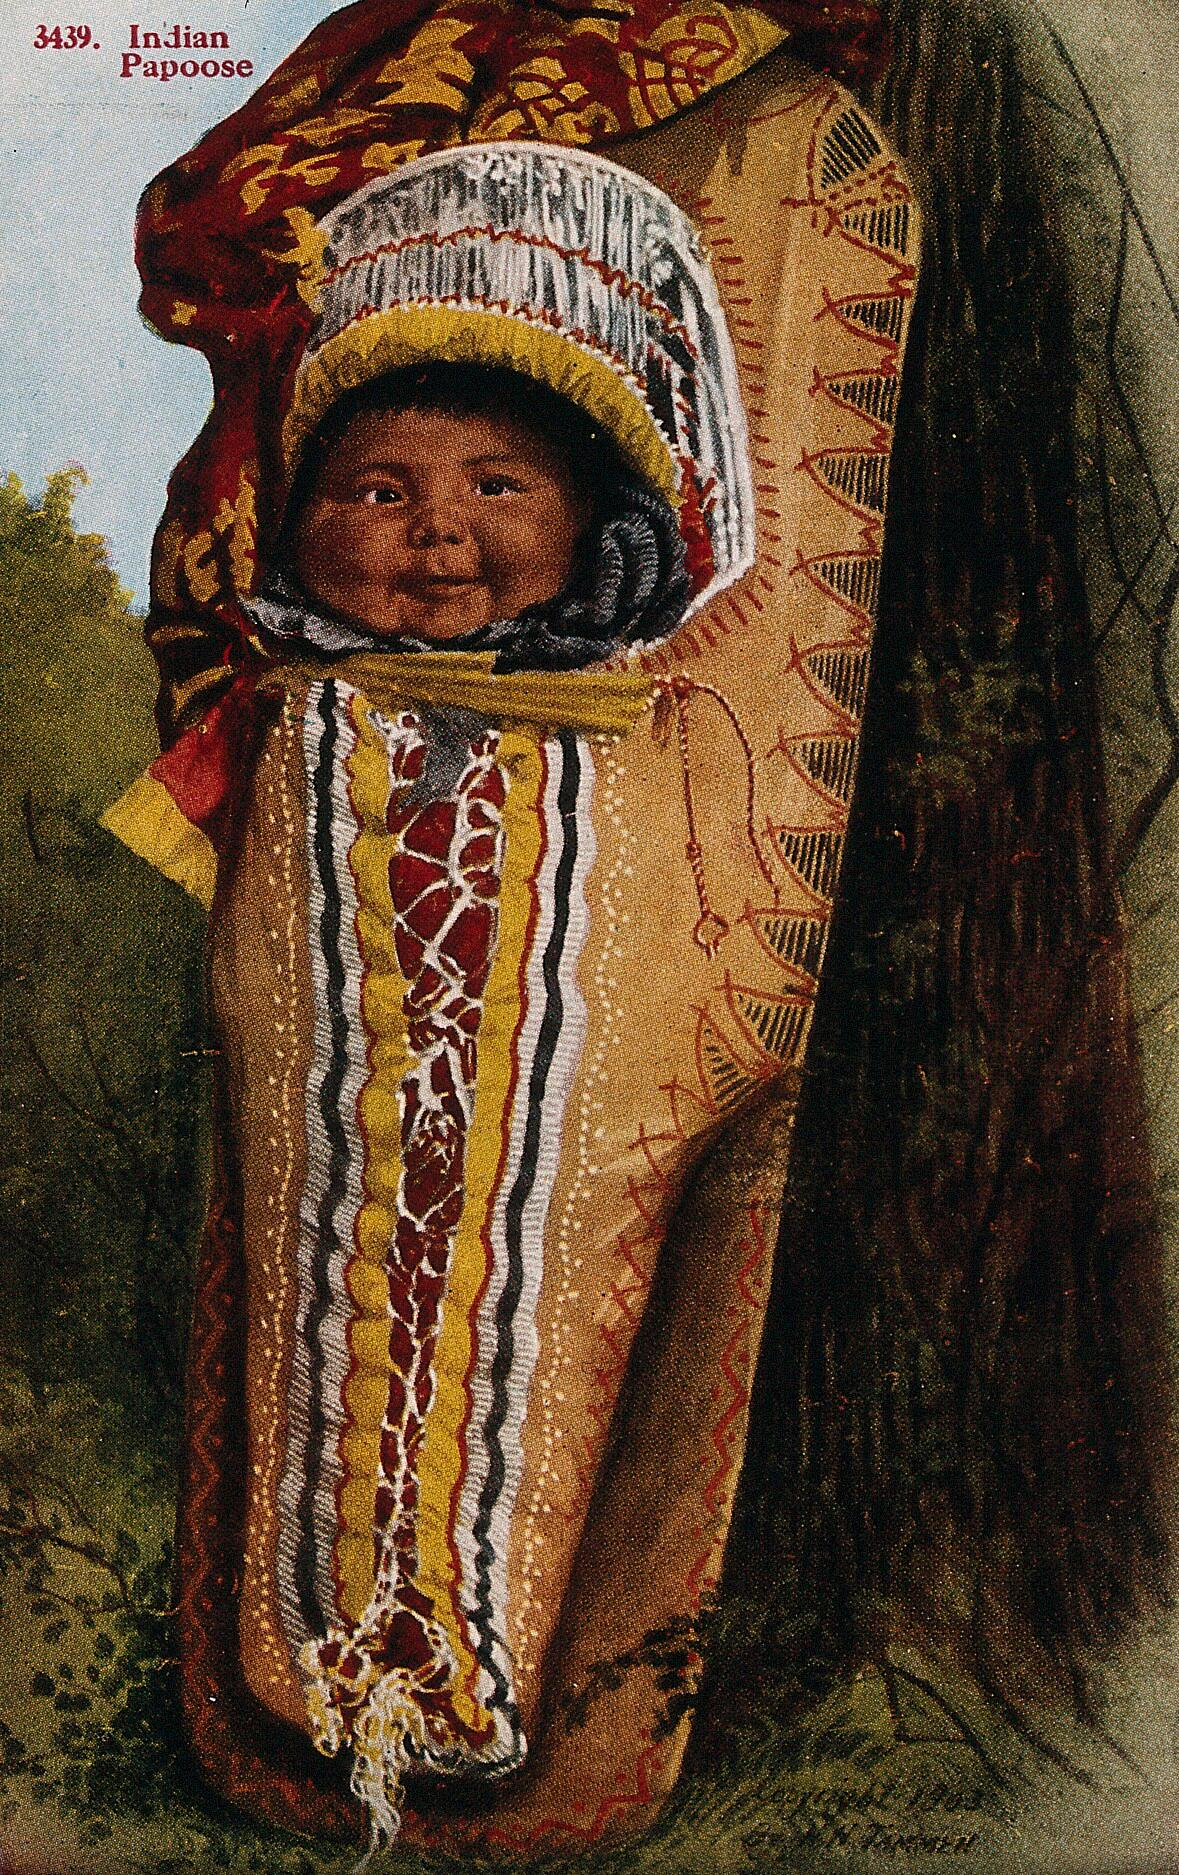 52891a4d05b An Indian papoose in a baby carrier. Photographic postcard